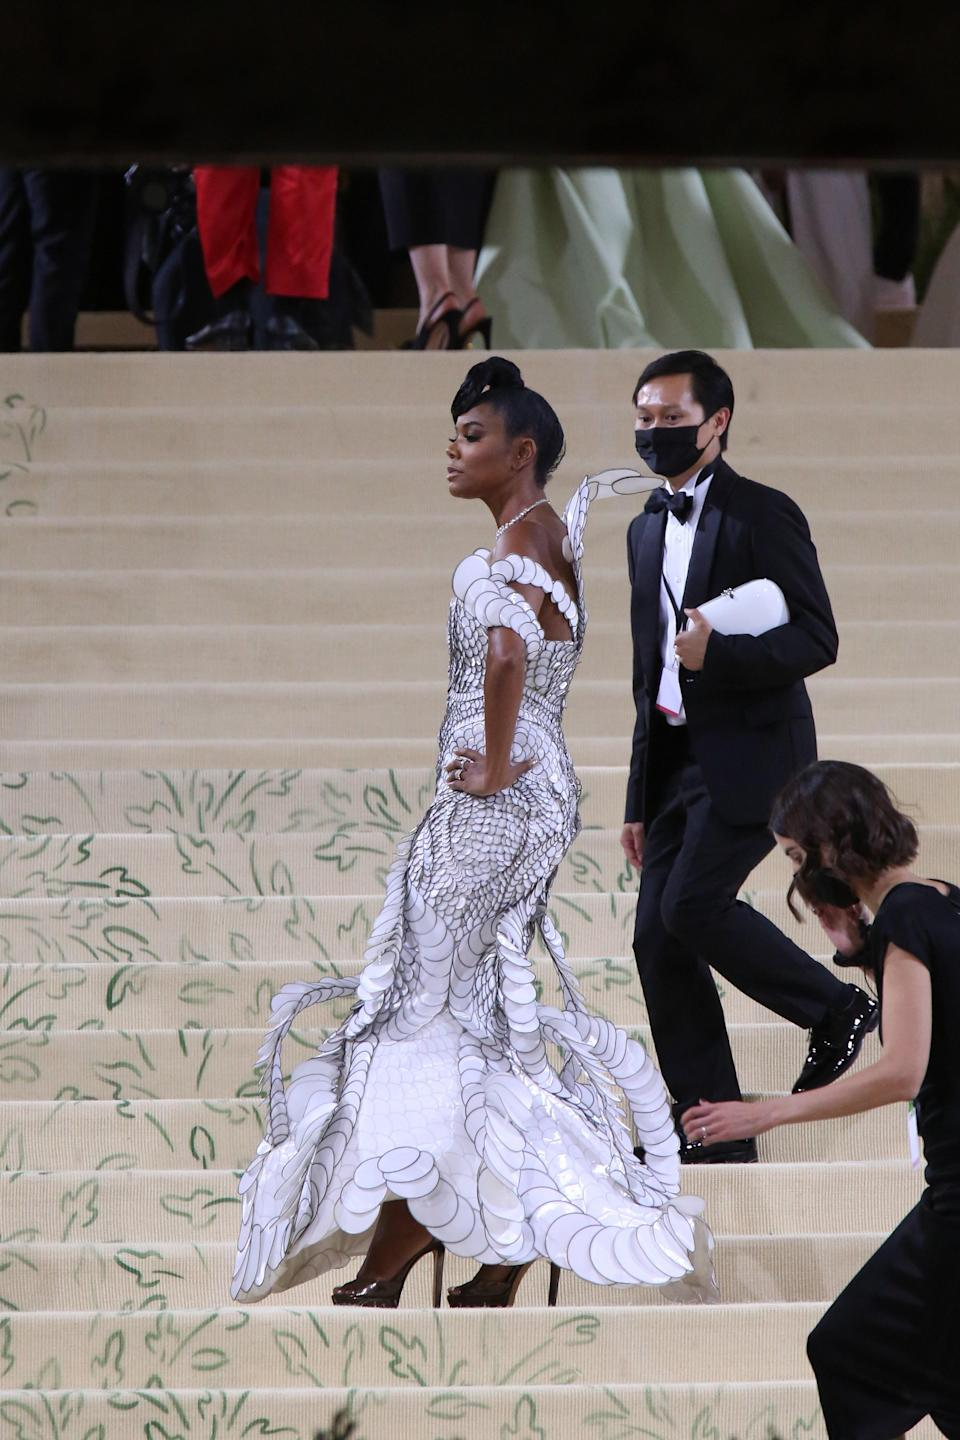 """Gabrielle Union attends The Metropolitan Museum of Art's Costume Institute benefit gala celebrating the opening of the """"In America: A Lexicon of Fashion"""" exhibition on Monday, Sept. 13, 2021, in New York. - Credit: ZUMAPRESS.com / MEGA"""